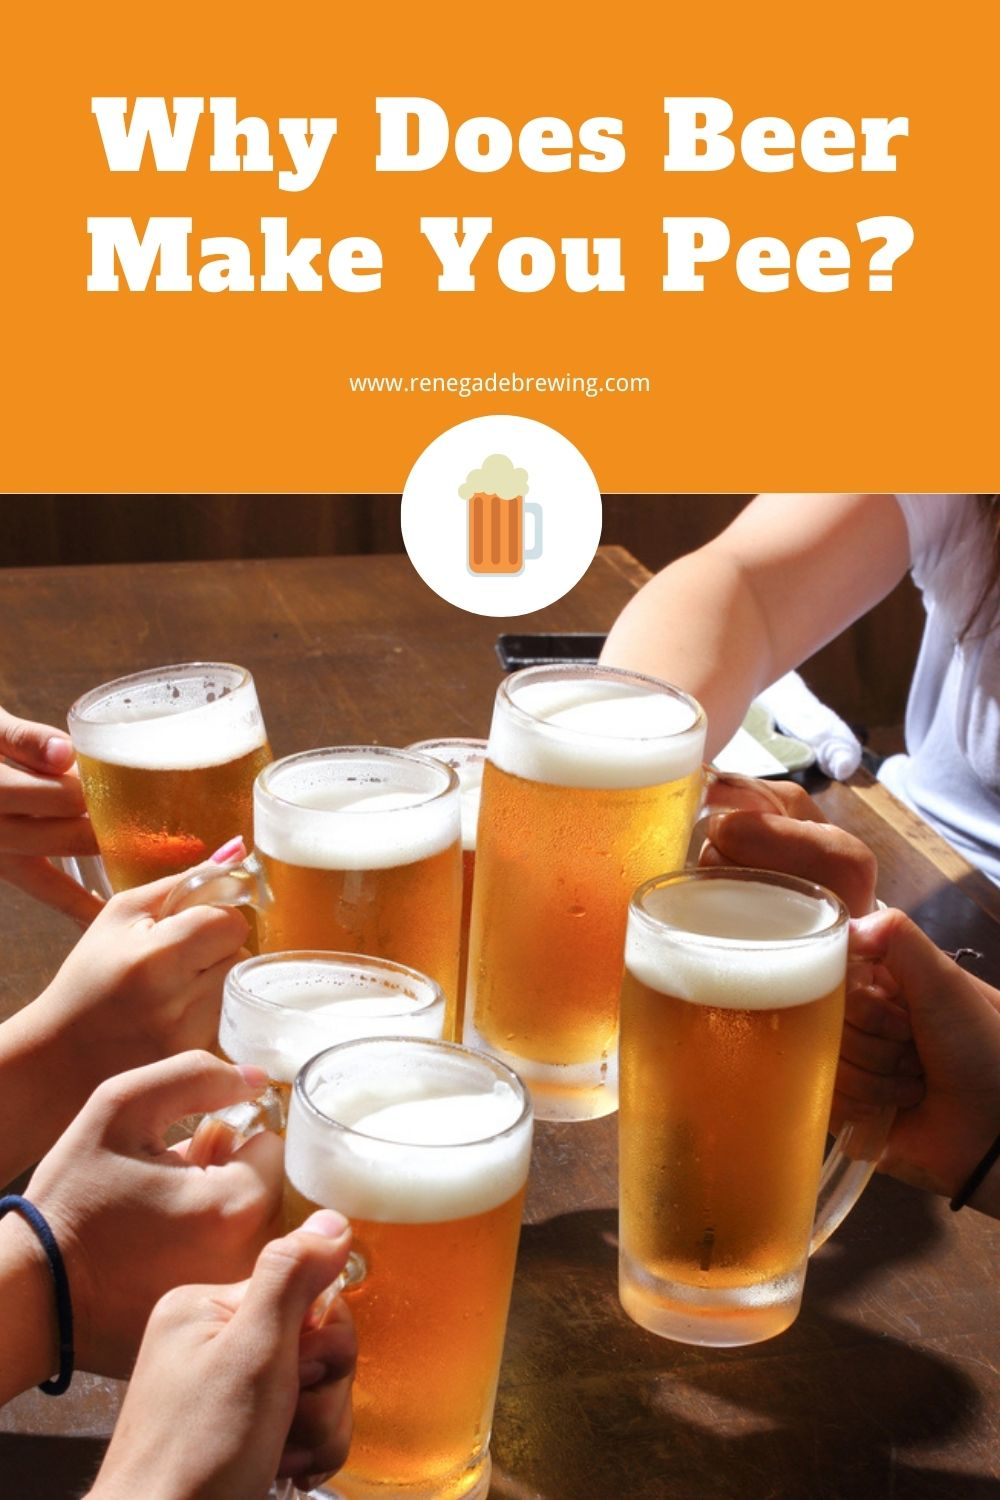 Why Does Beer Make You Pee 1